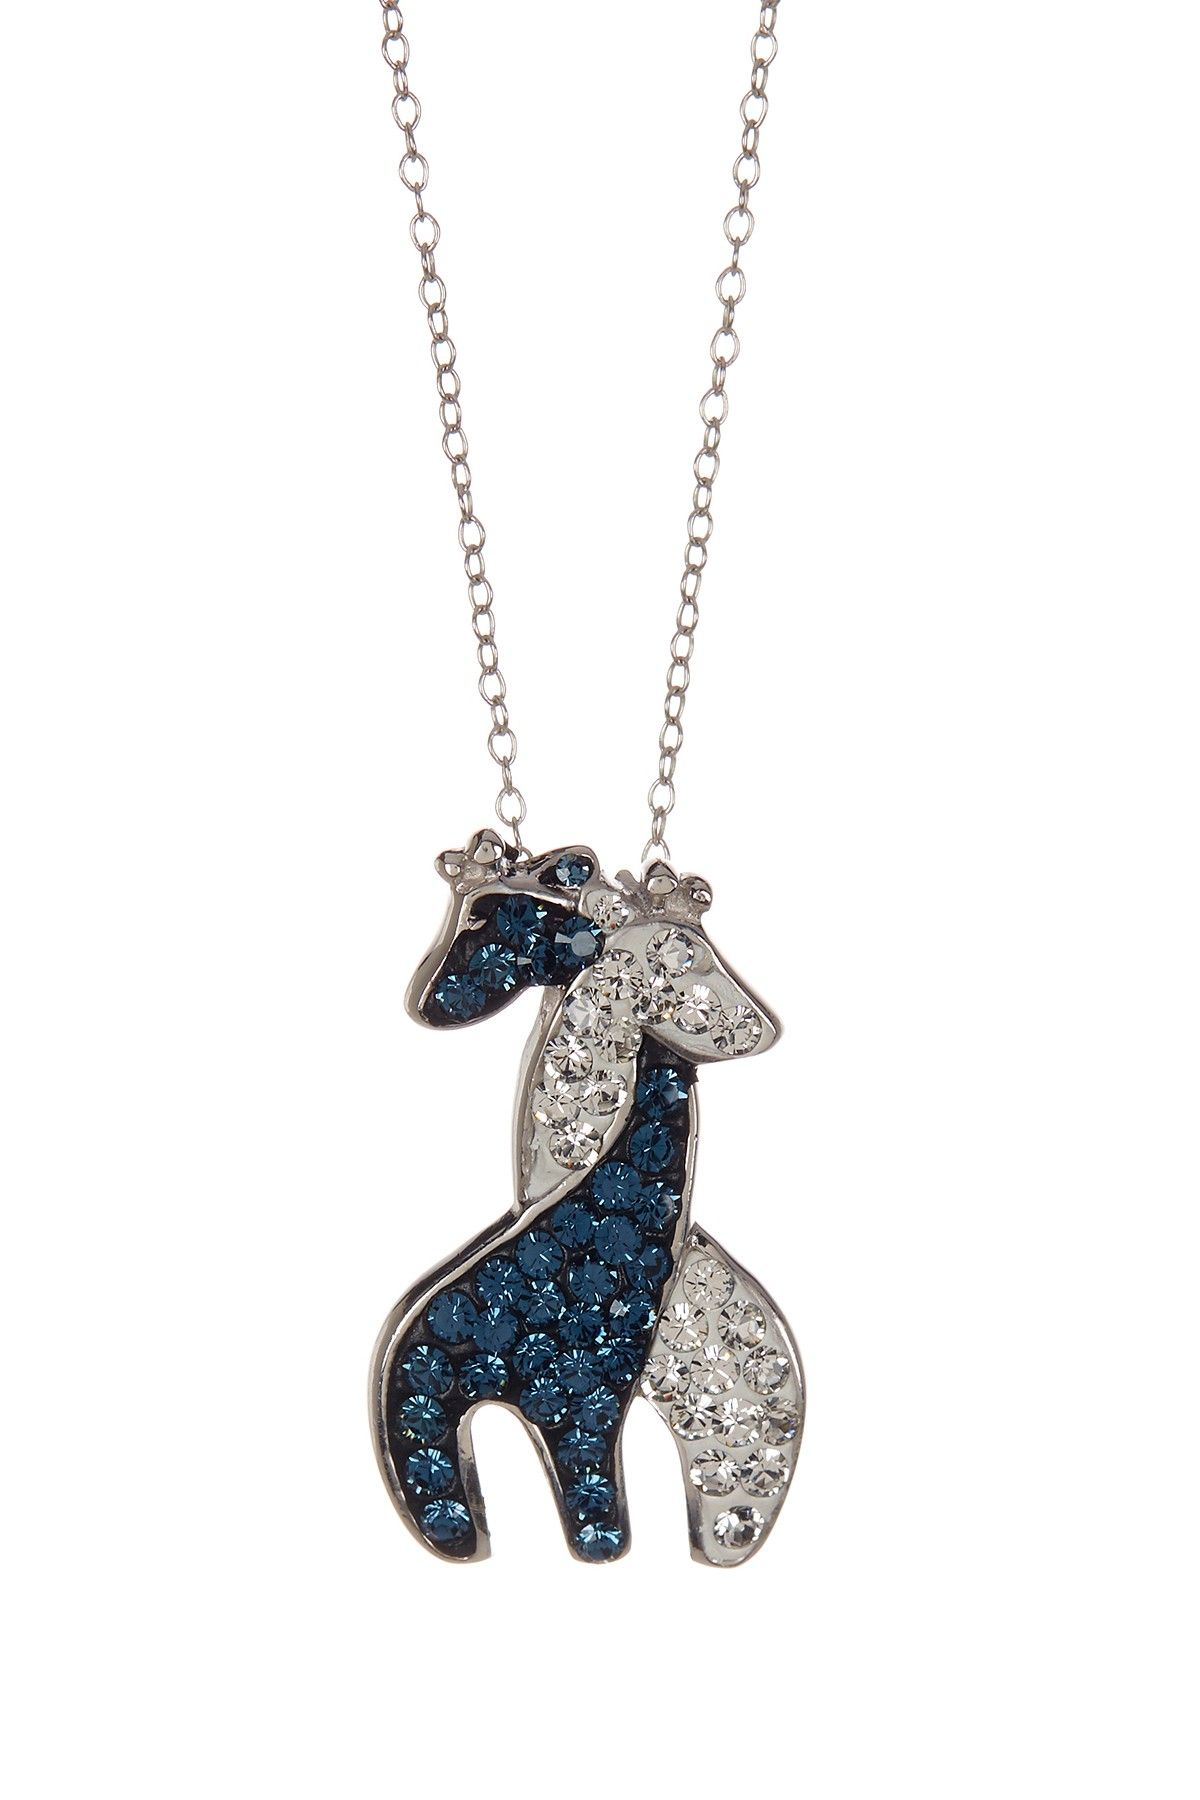 store now in silver giraffe necklace love pendant gold